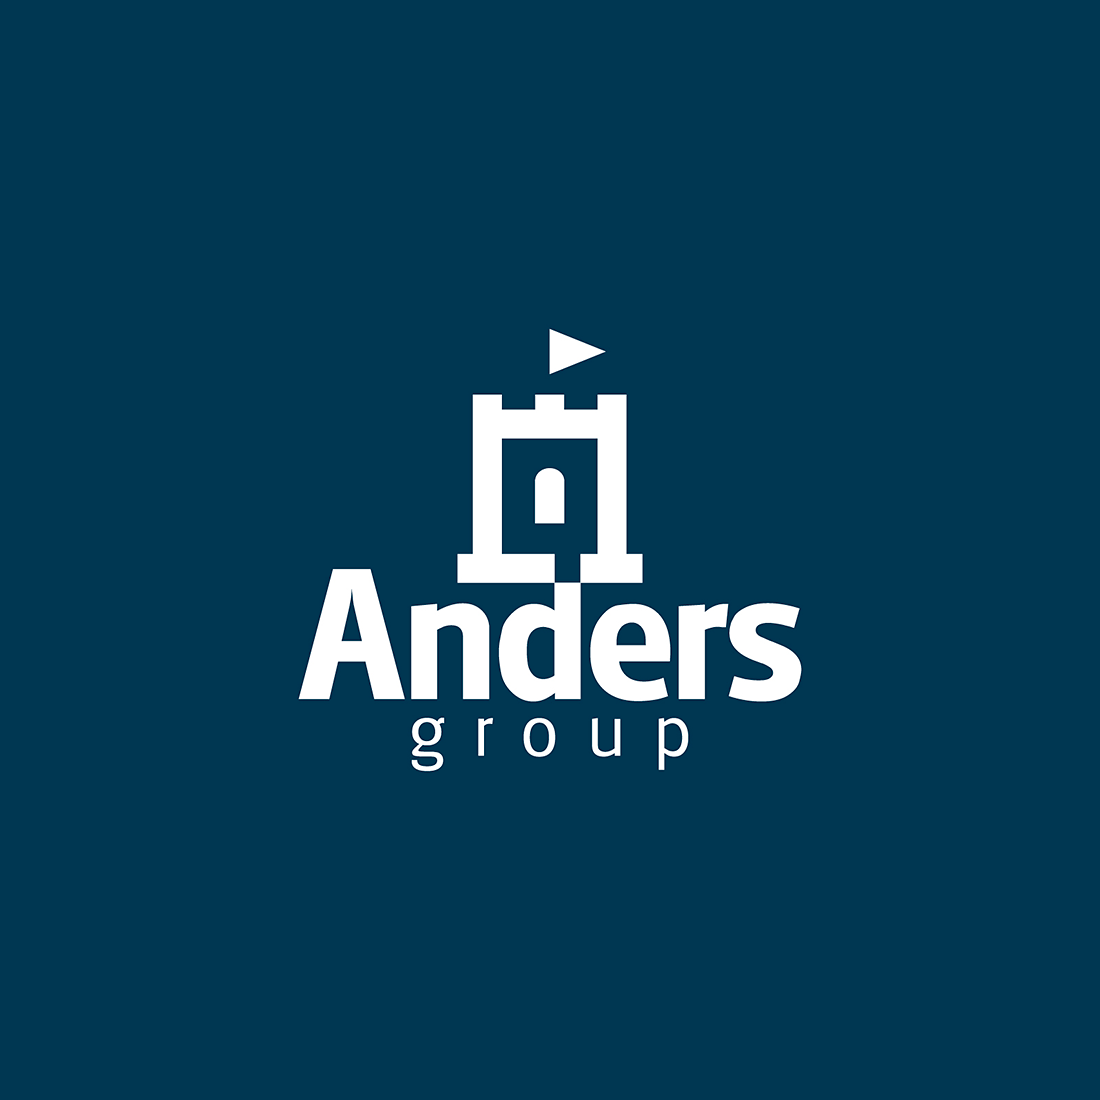 https://ponad.pl/wp-content/uploads/2015/01/ander-group-logo-on-dark1.png